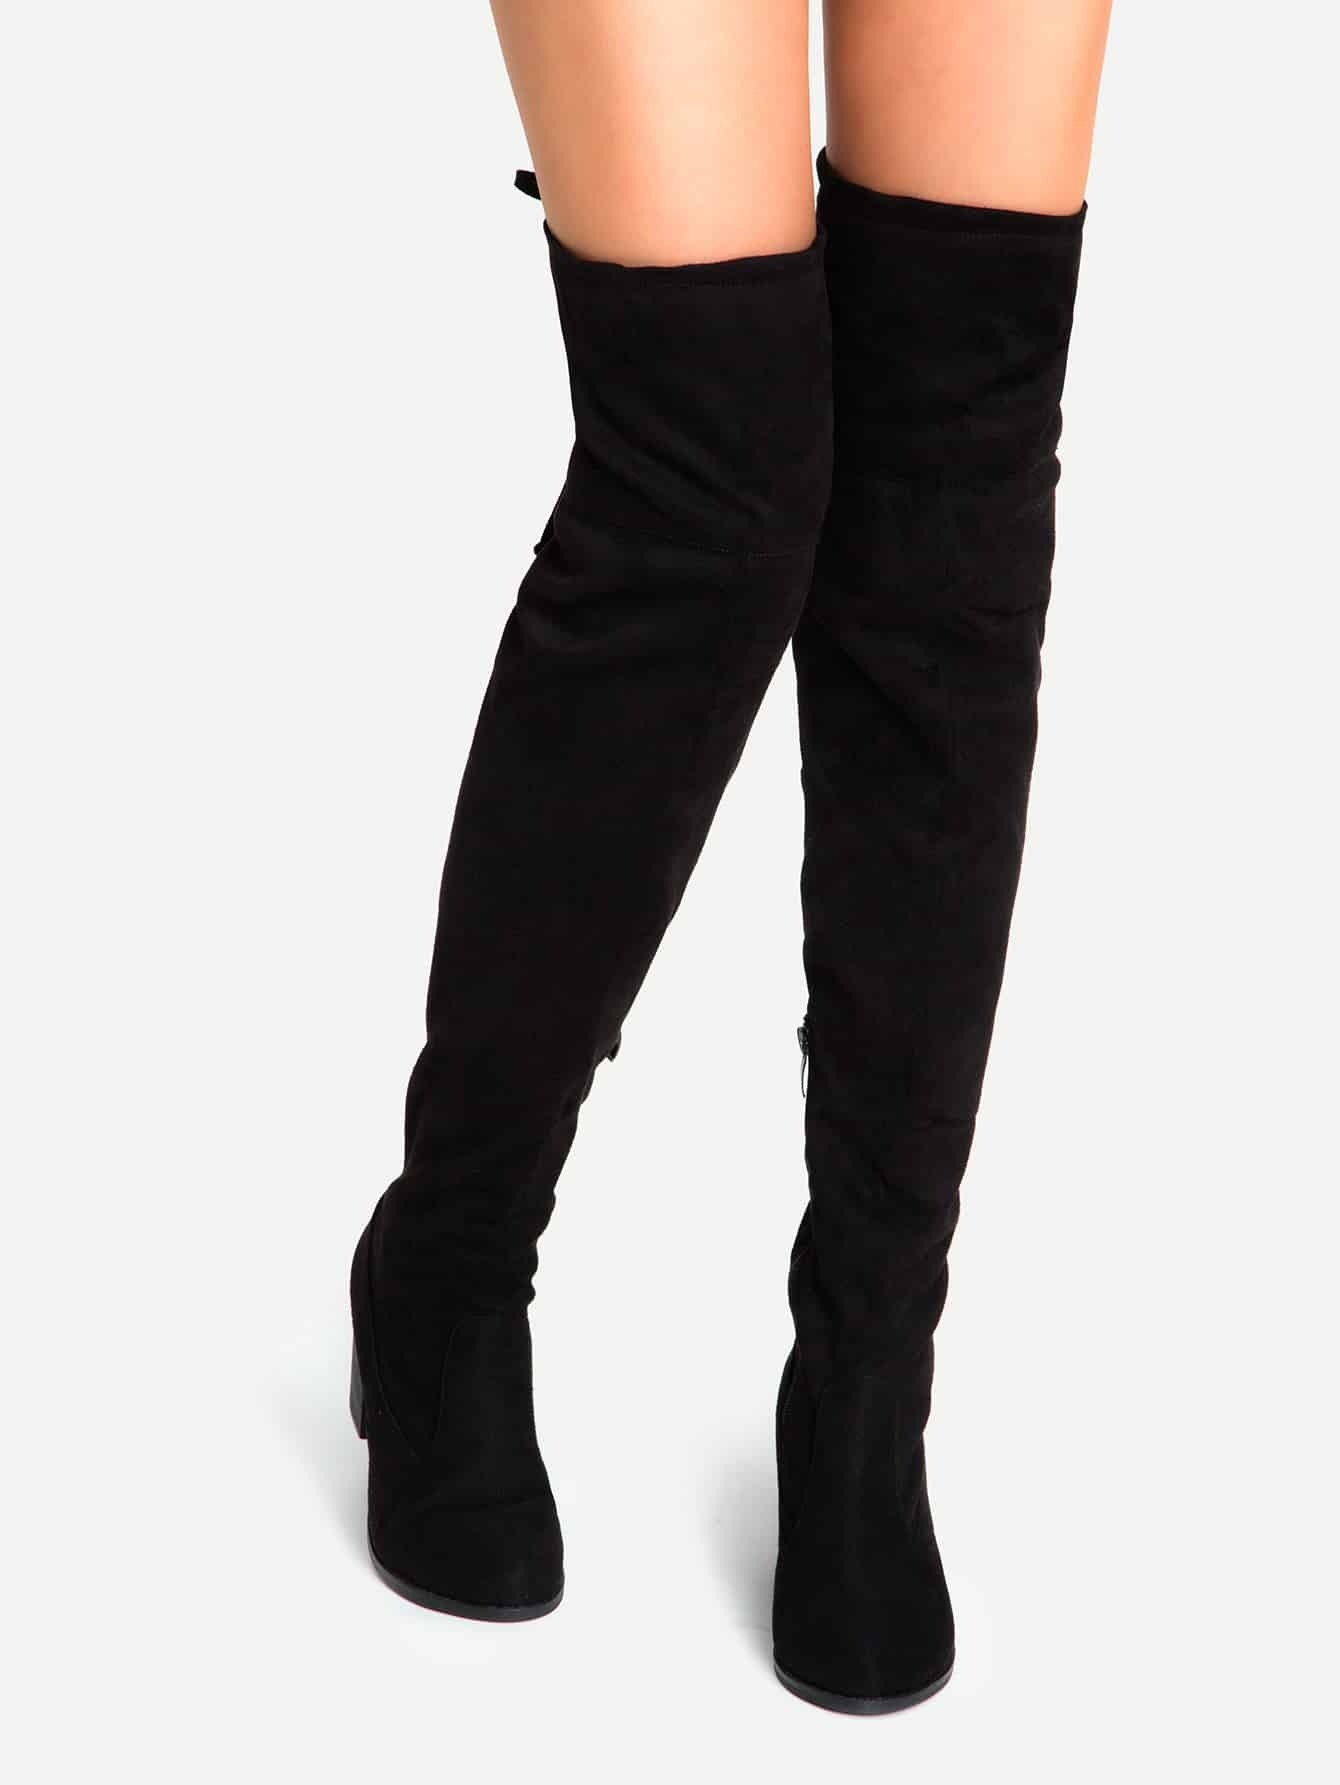 Black Suede Lace Up Over The Knee Boots